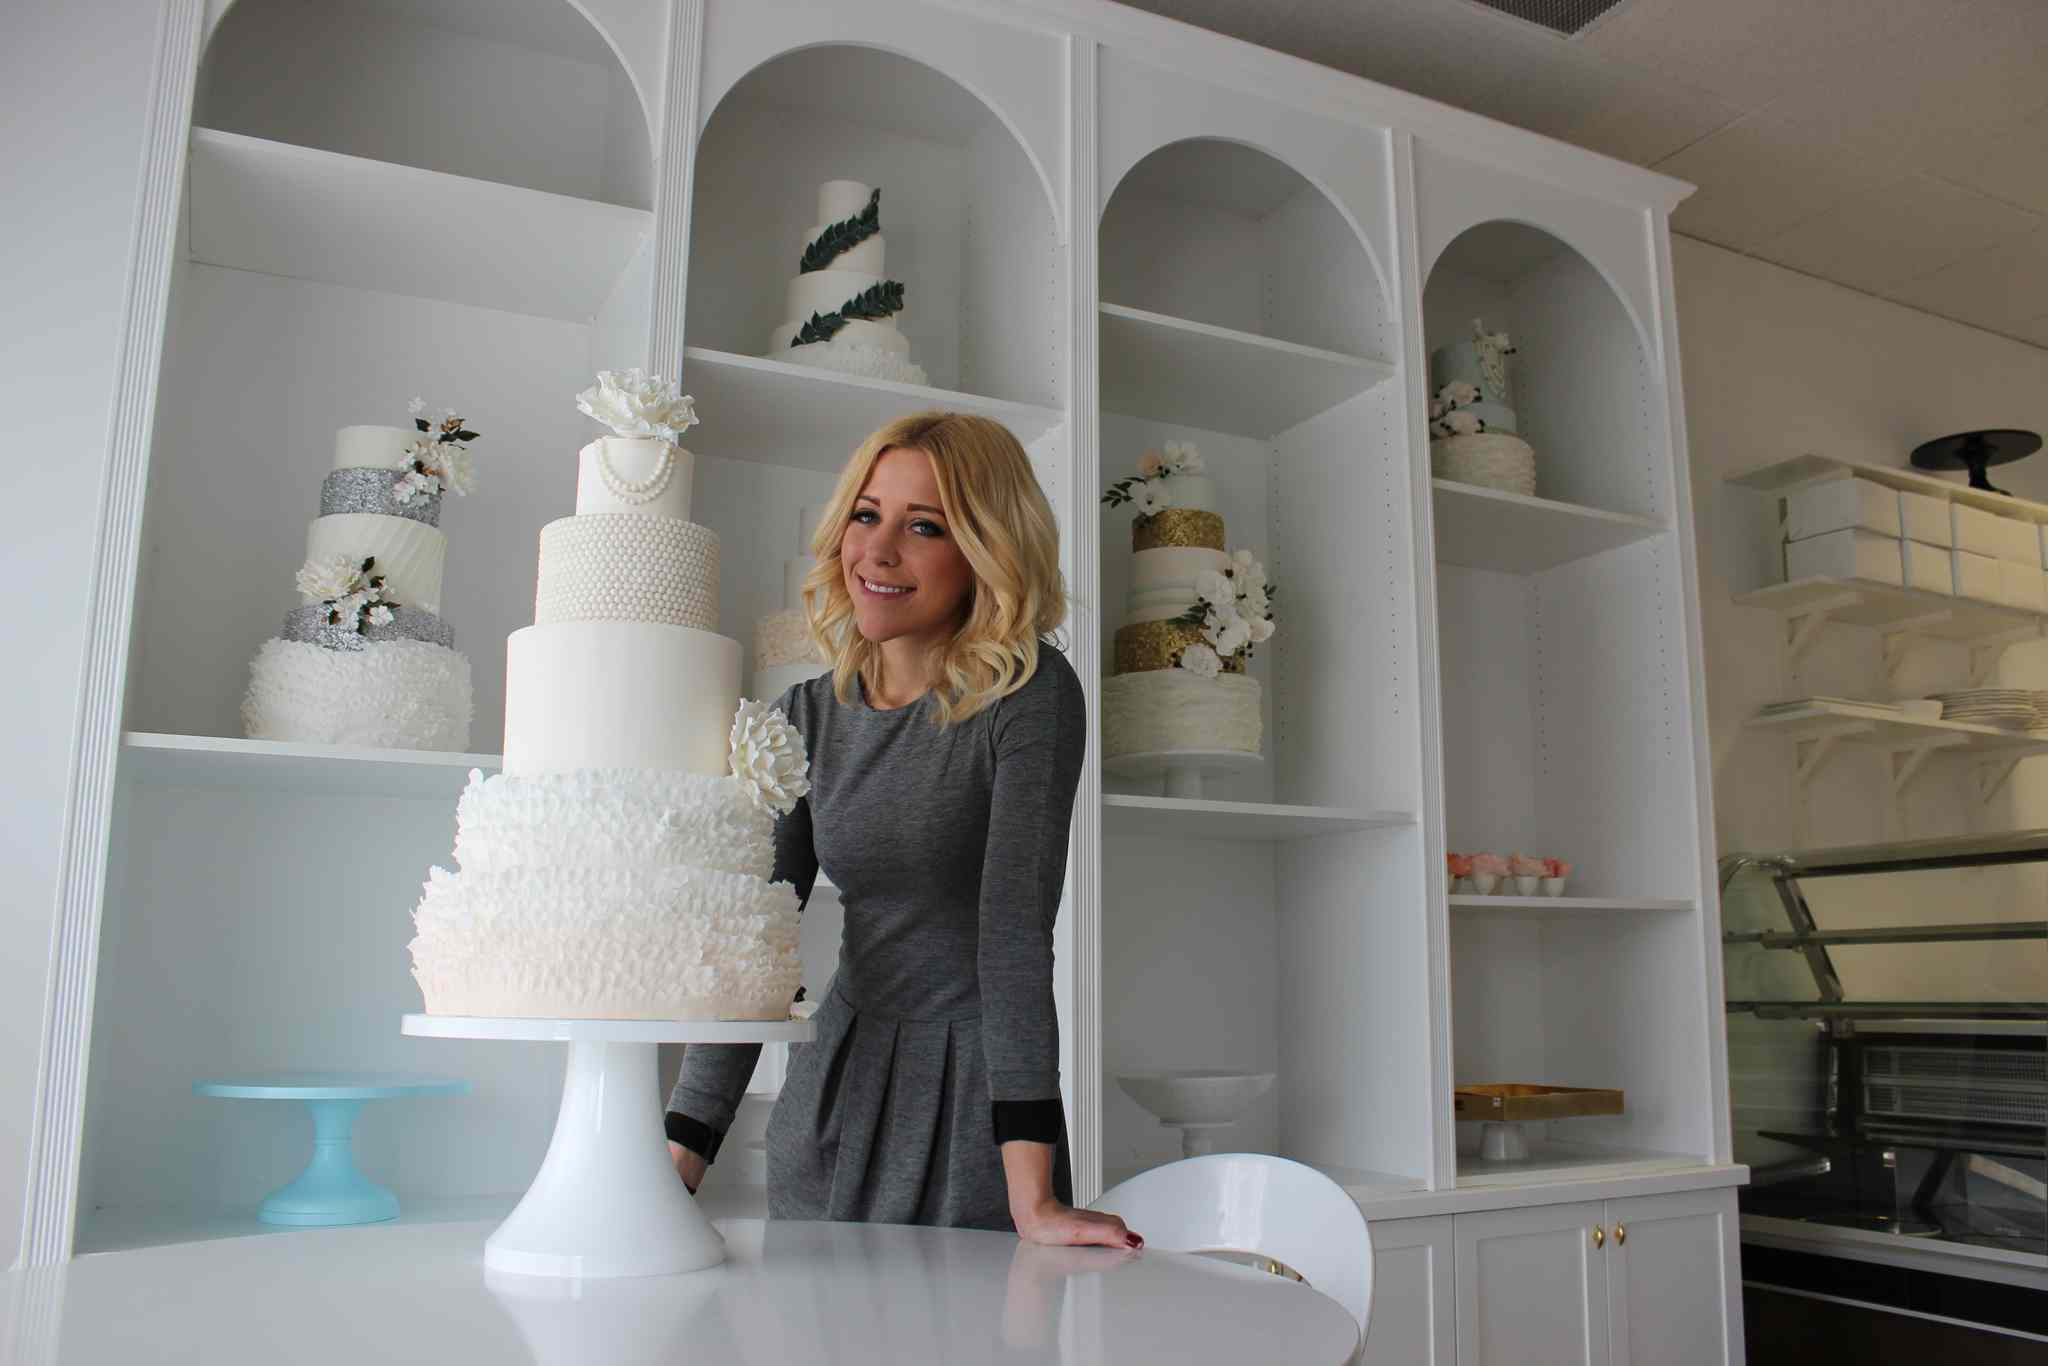 Jenna Illchuk, 25, has opened her own bakery, Jenna Rae Cakes, at 580 Academy Rd. The former dentistry student said she's been dreaming about it for three years.